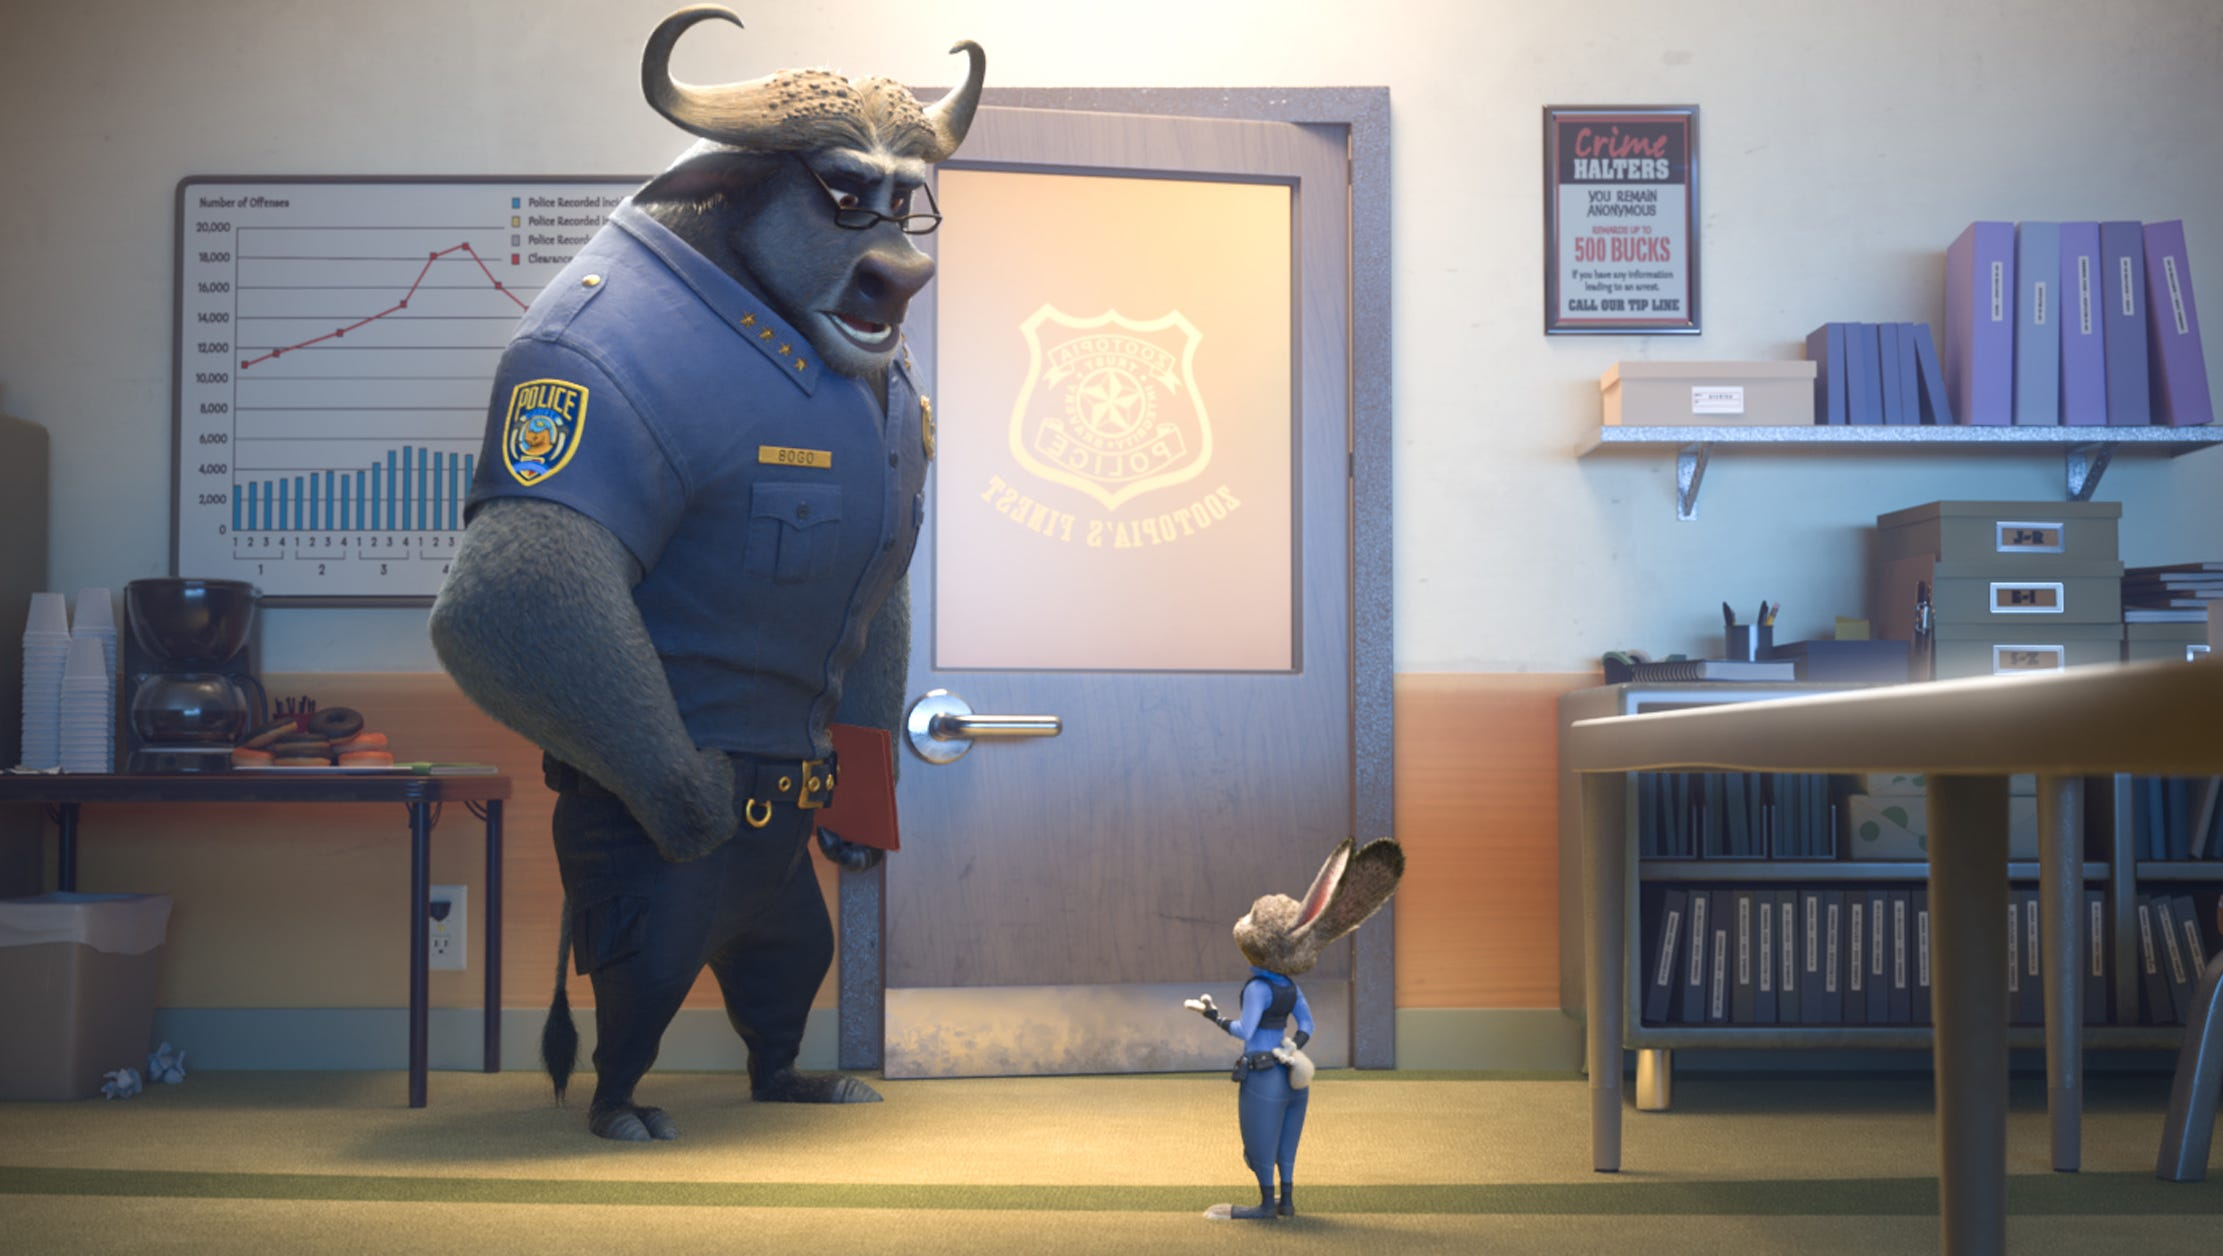 Animal Instincts 3 Full Movie zootopia' animal world reflects human issues